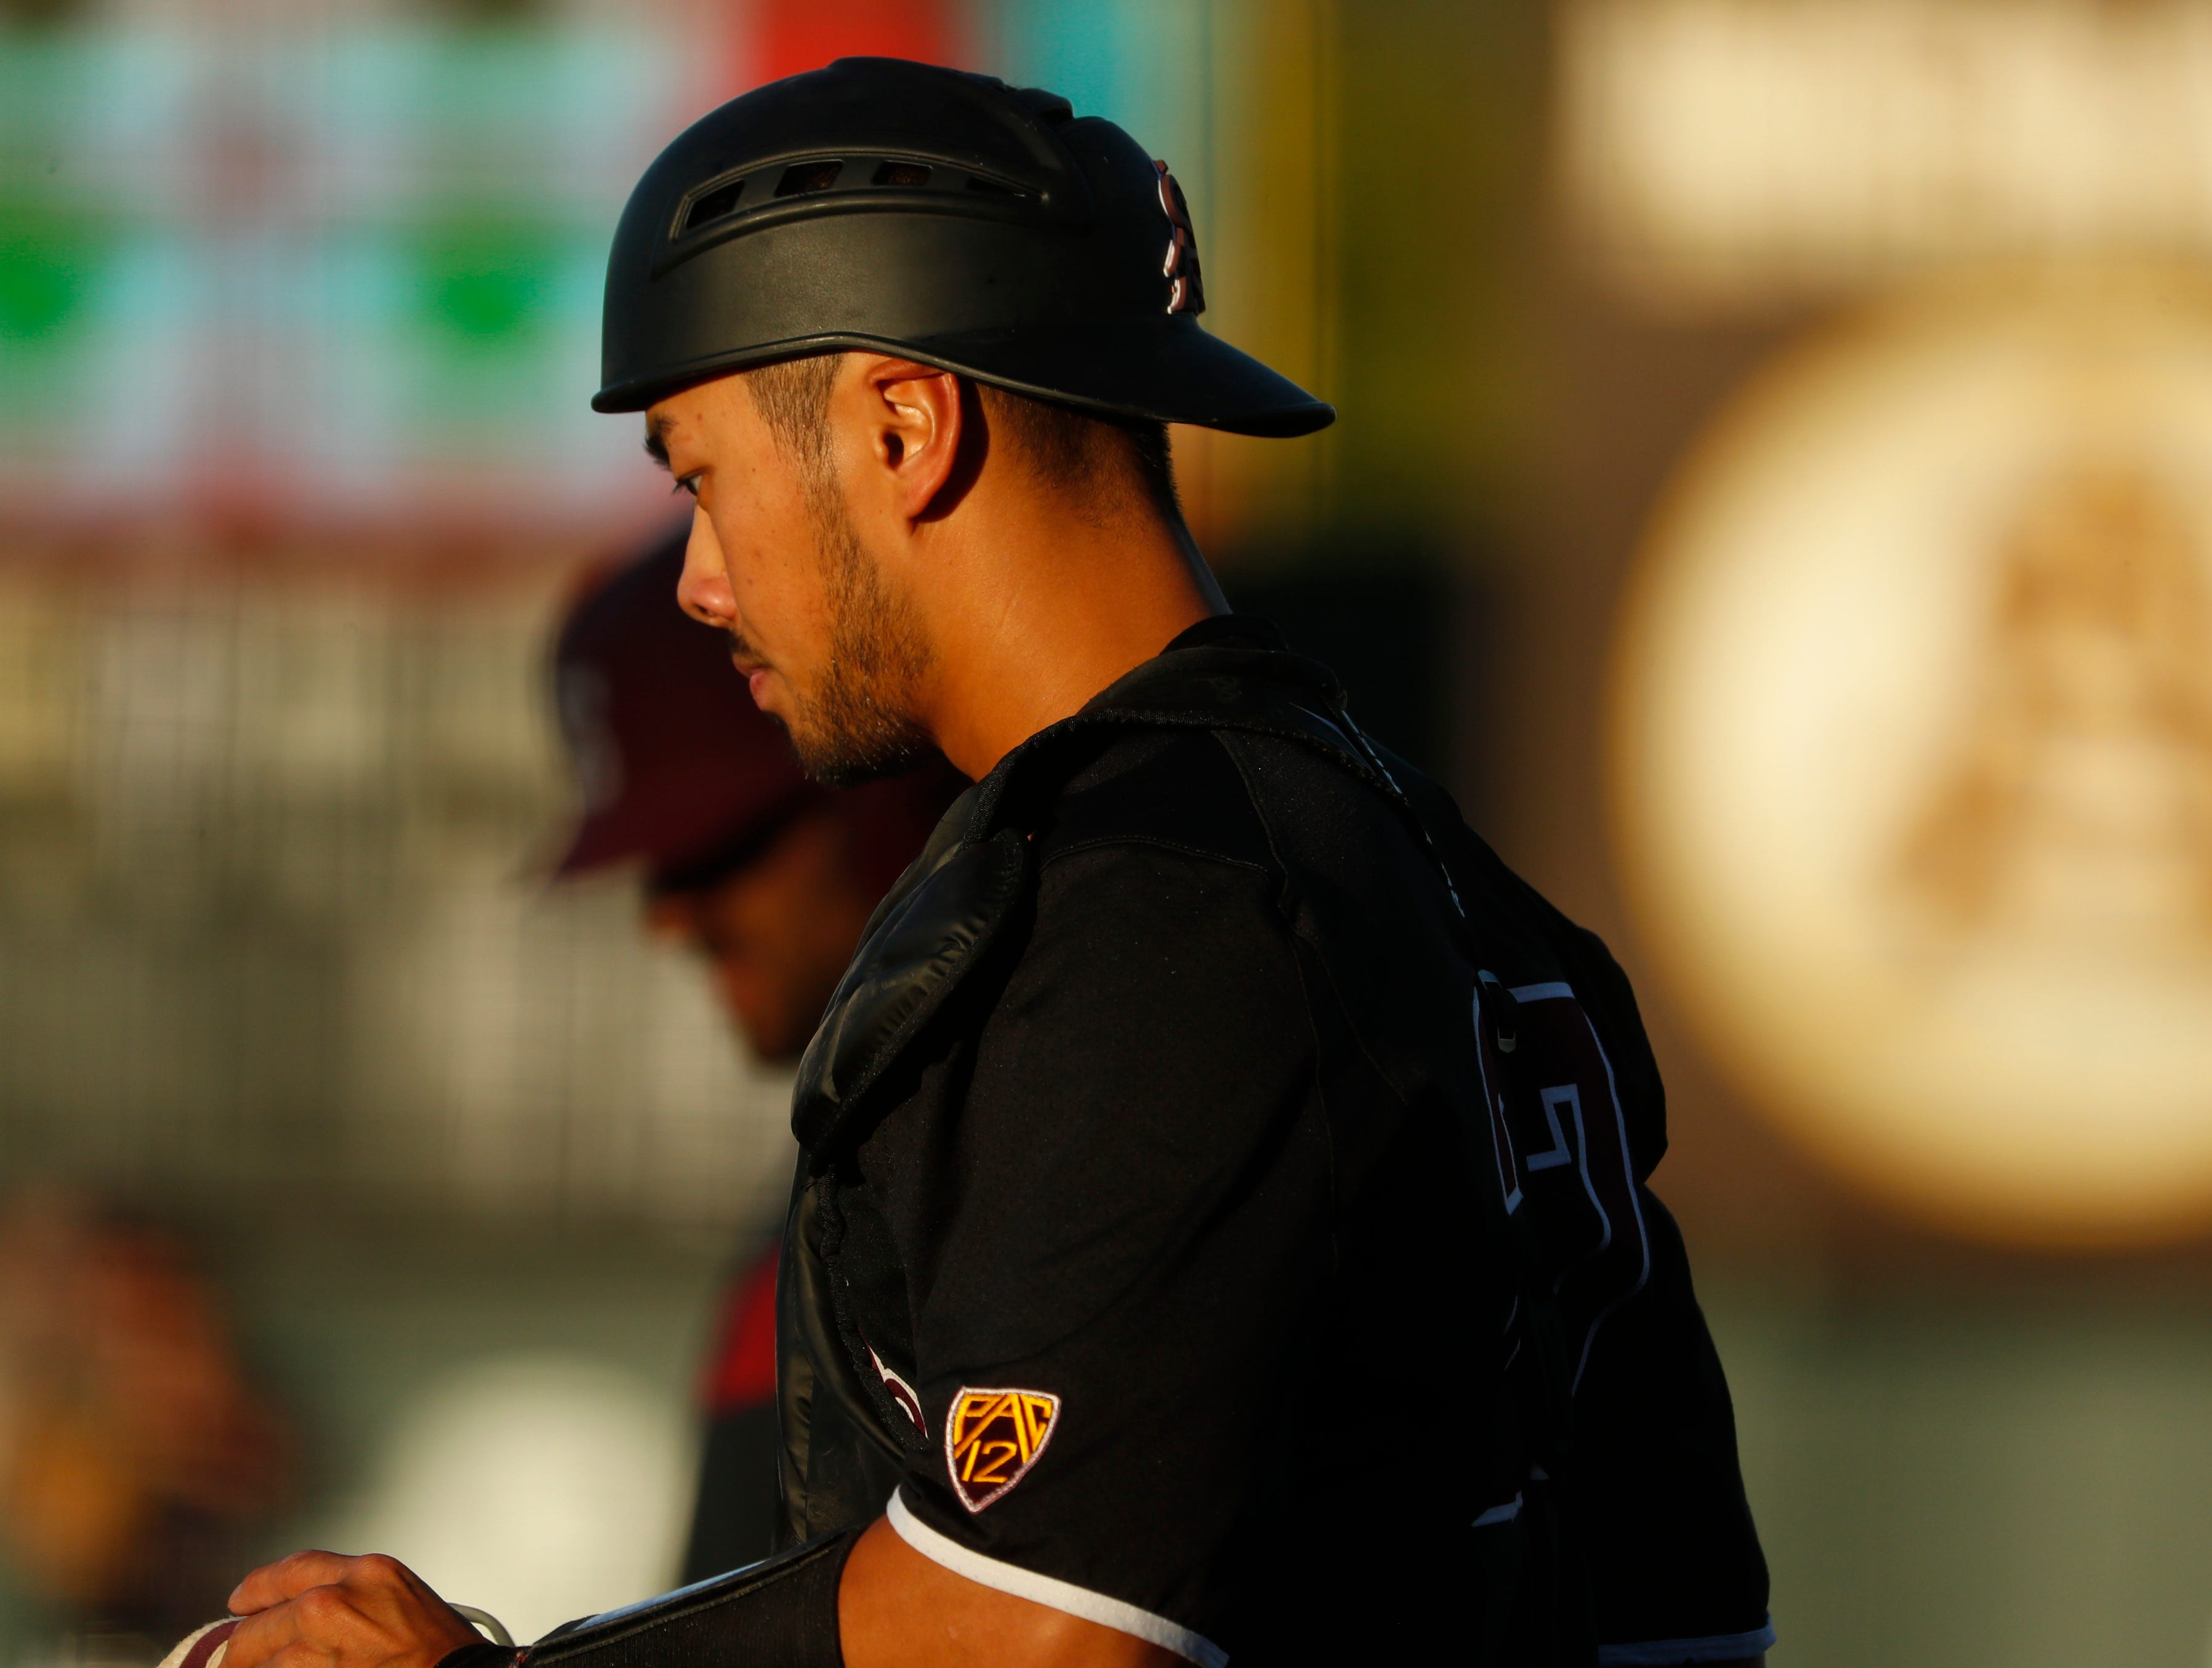 ASU's catcher Lyle Lin (27) heads back to home plate after a foul ball against Stanford at Phoenix Municipal Stadium in Phoenix, Ariz. on May 23, 2019.